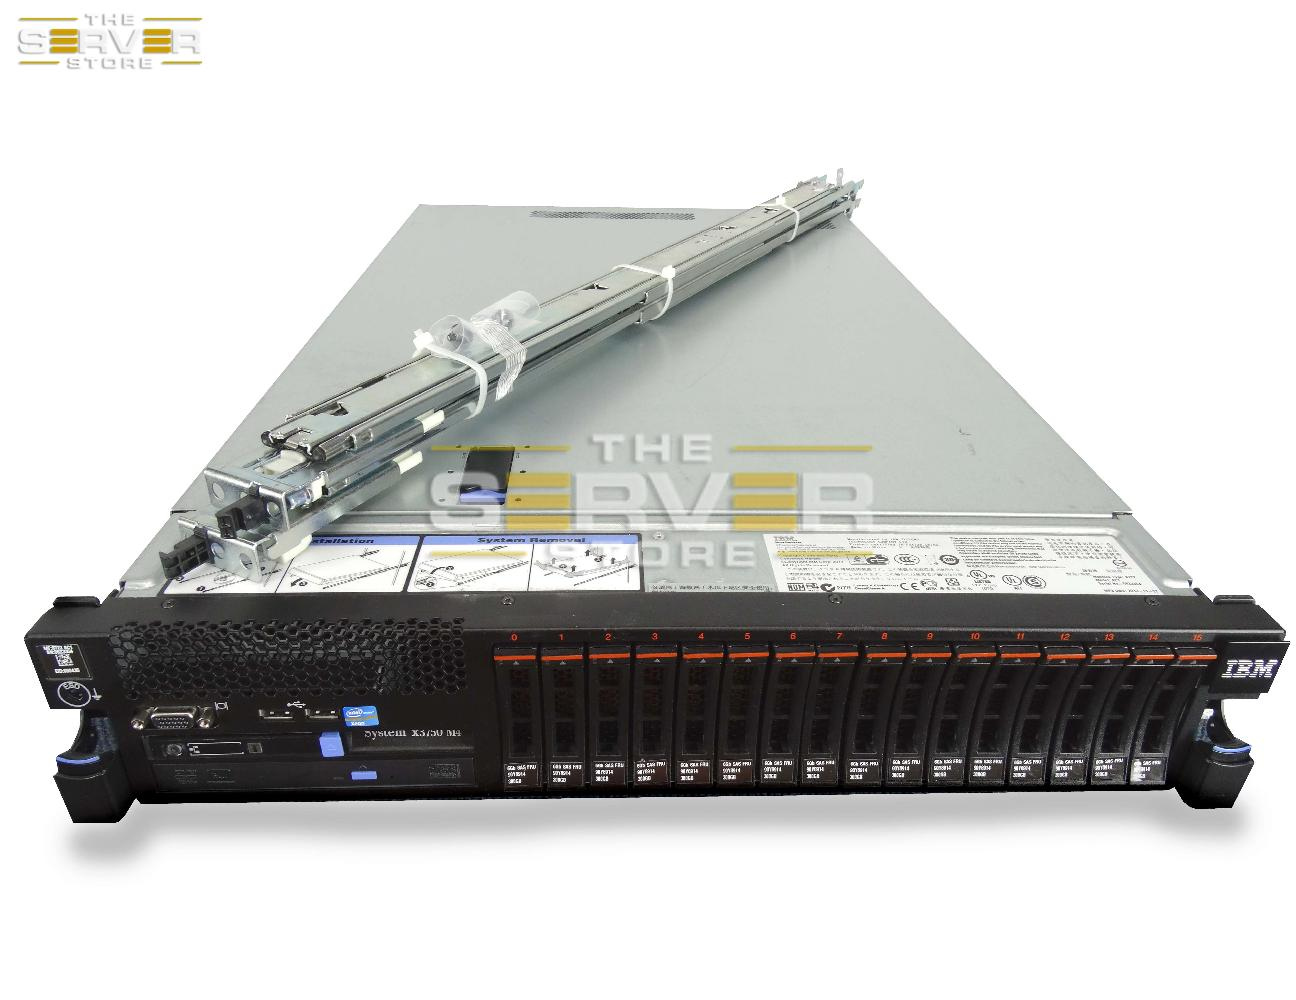 IBM X3750 M4 16x SFF *Website upgrade in progress. Please contact us with any questions you may have.*